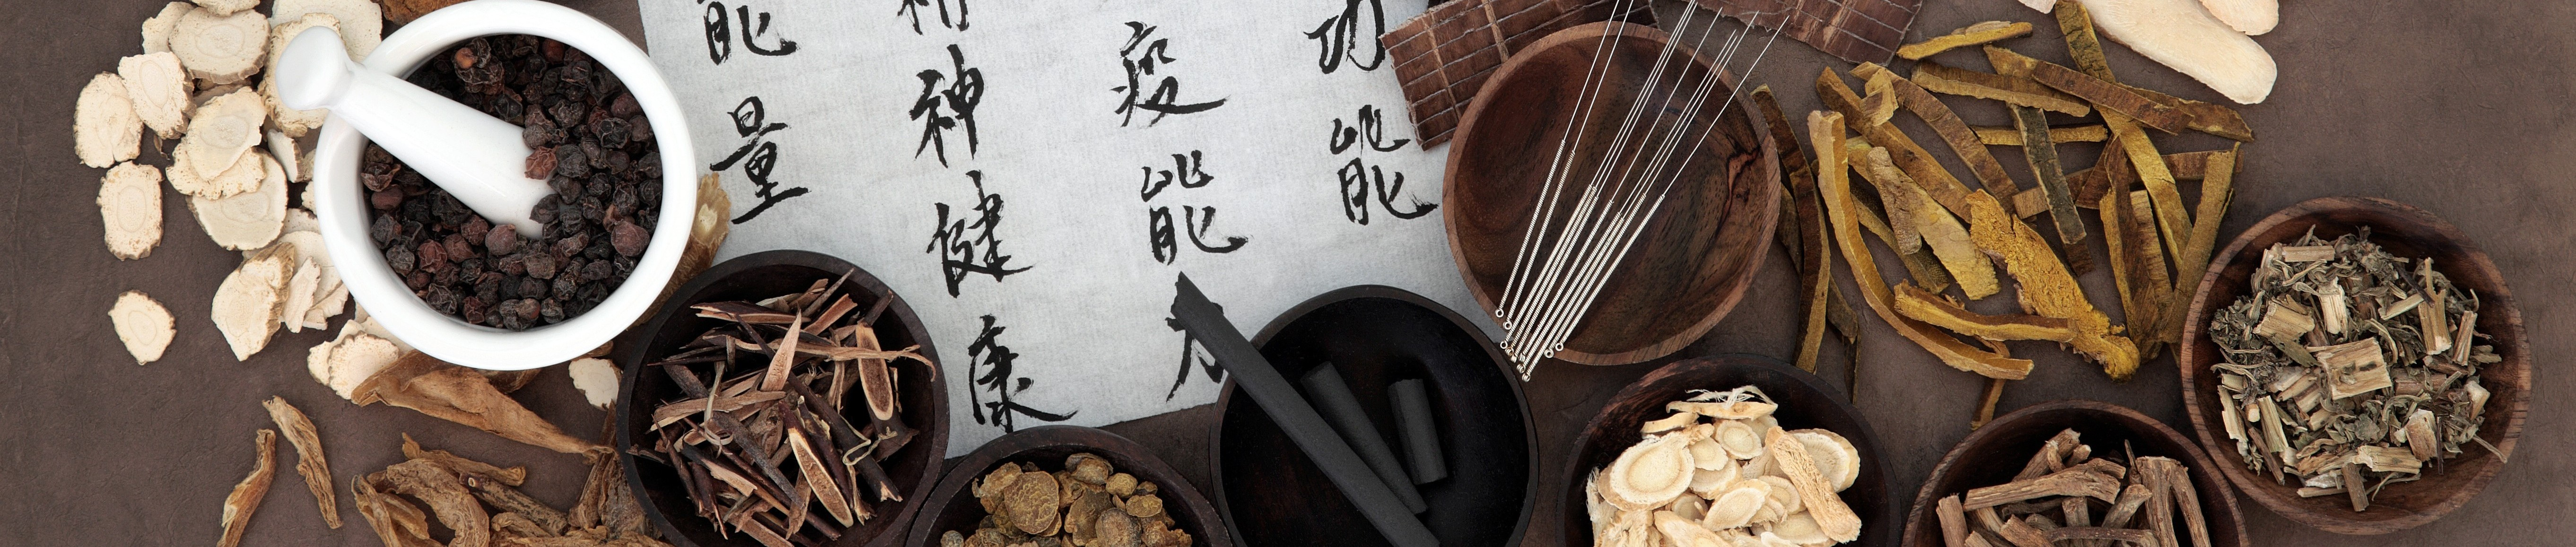 Doctorate of Acupuncture and Herbal Medicine